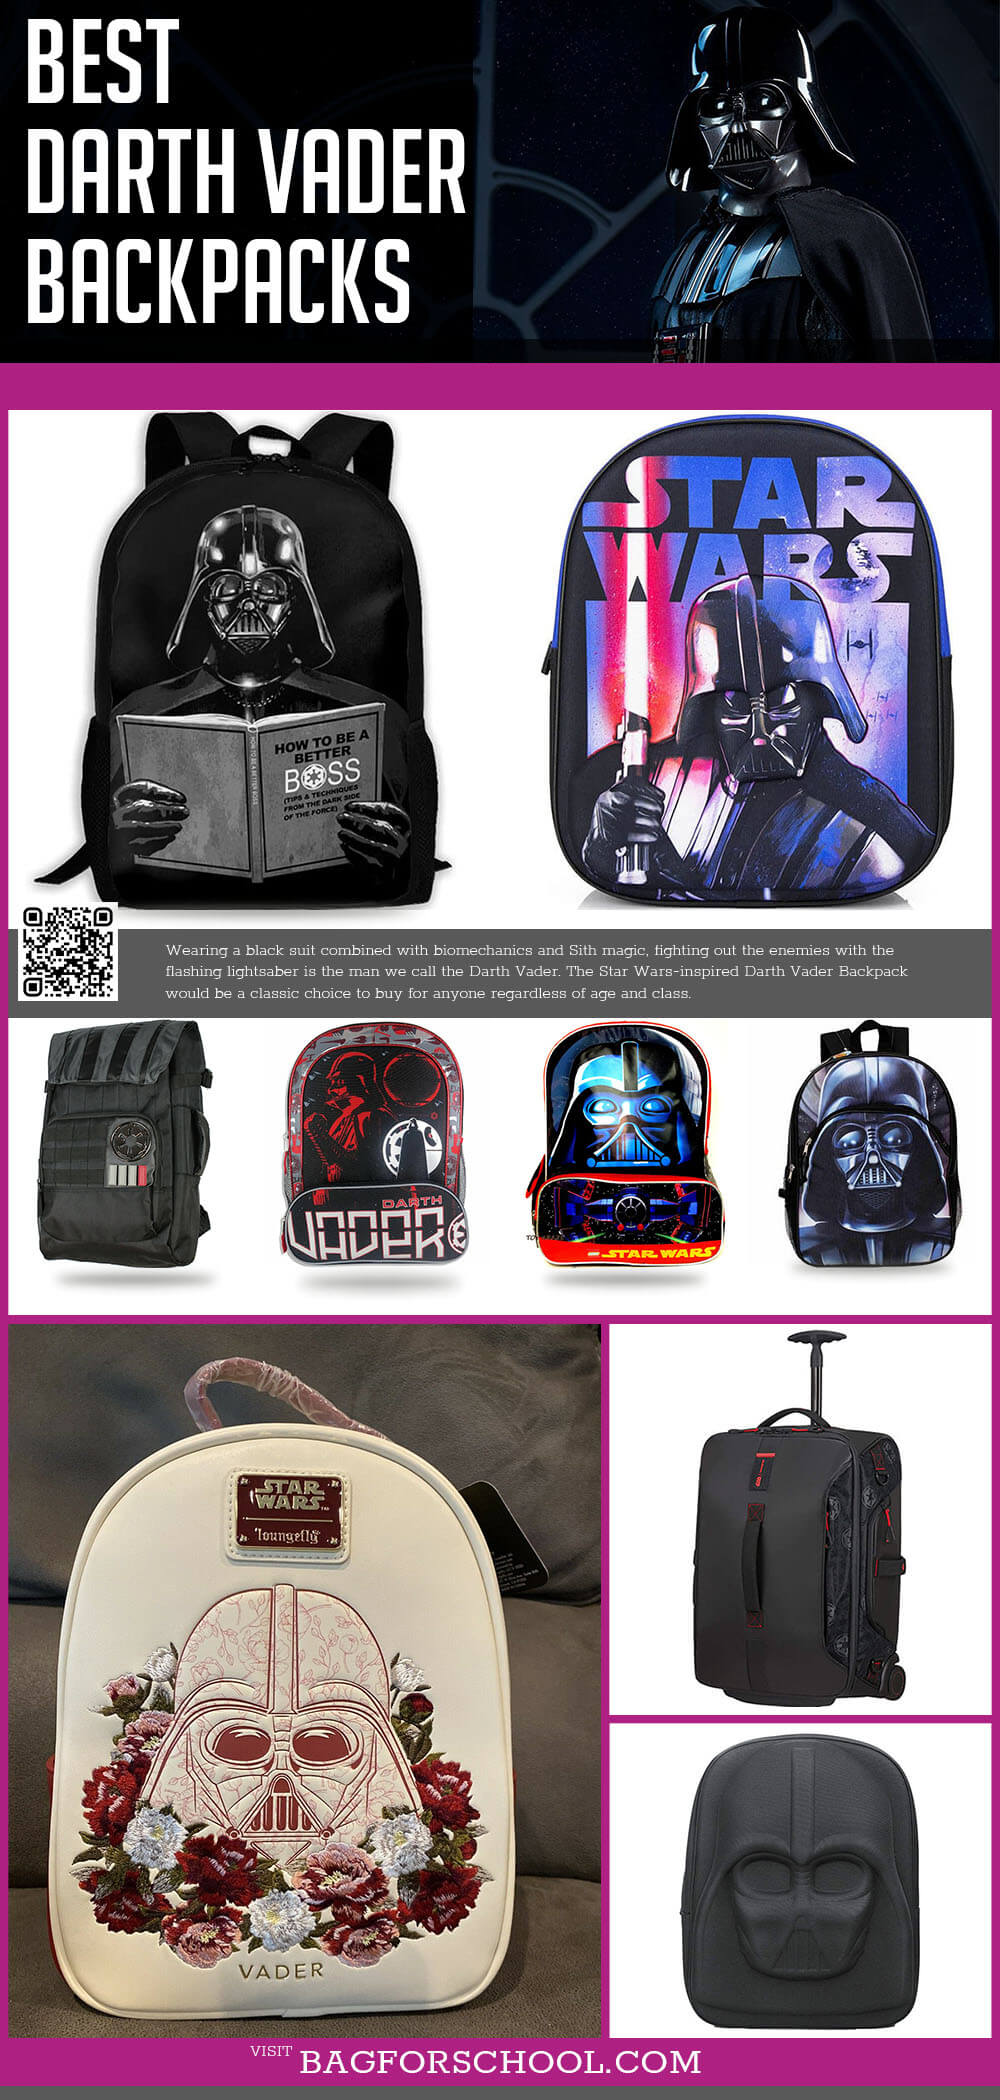 Star Wars Darth Vader Backpacks